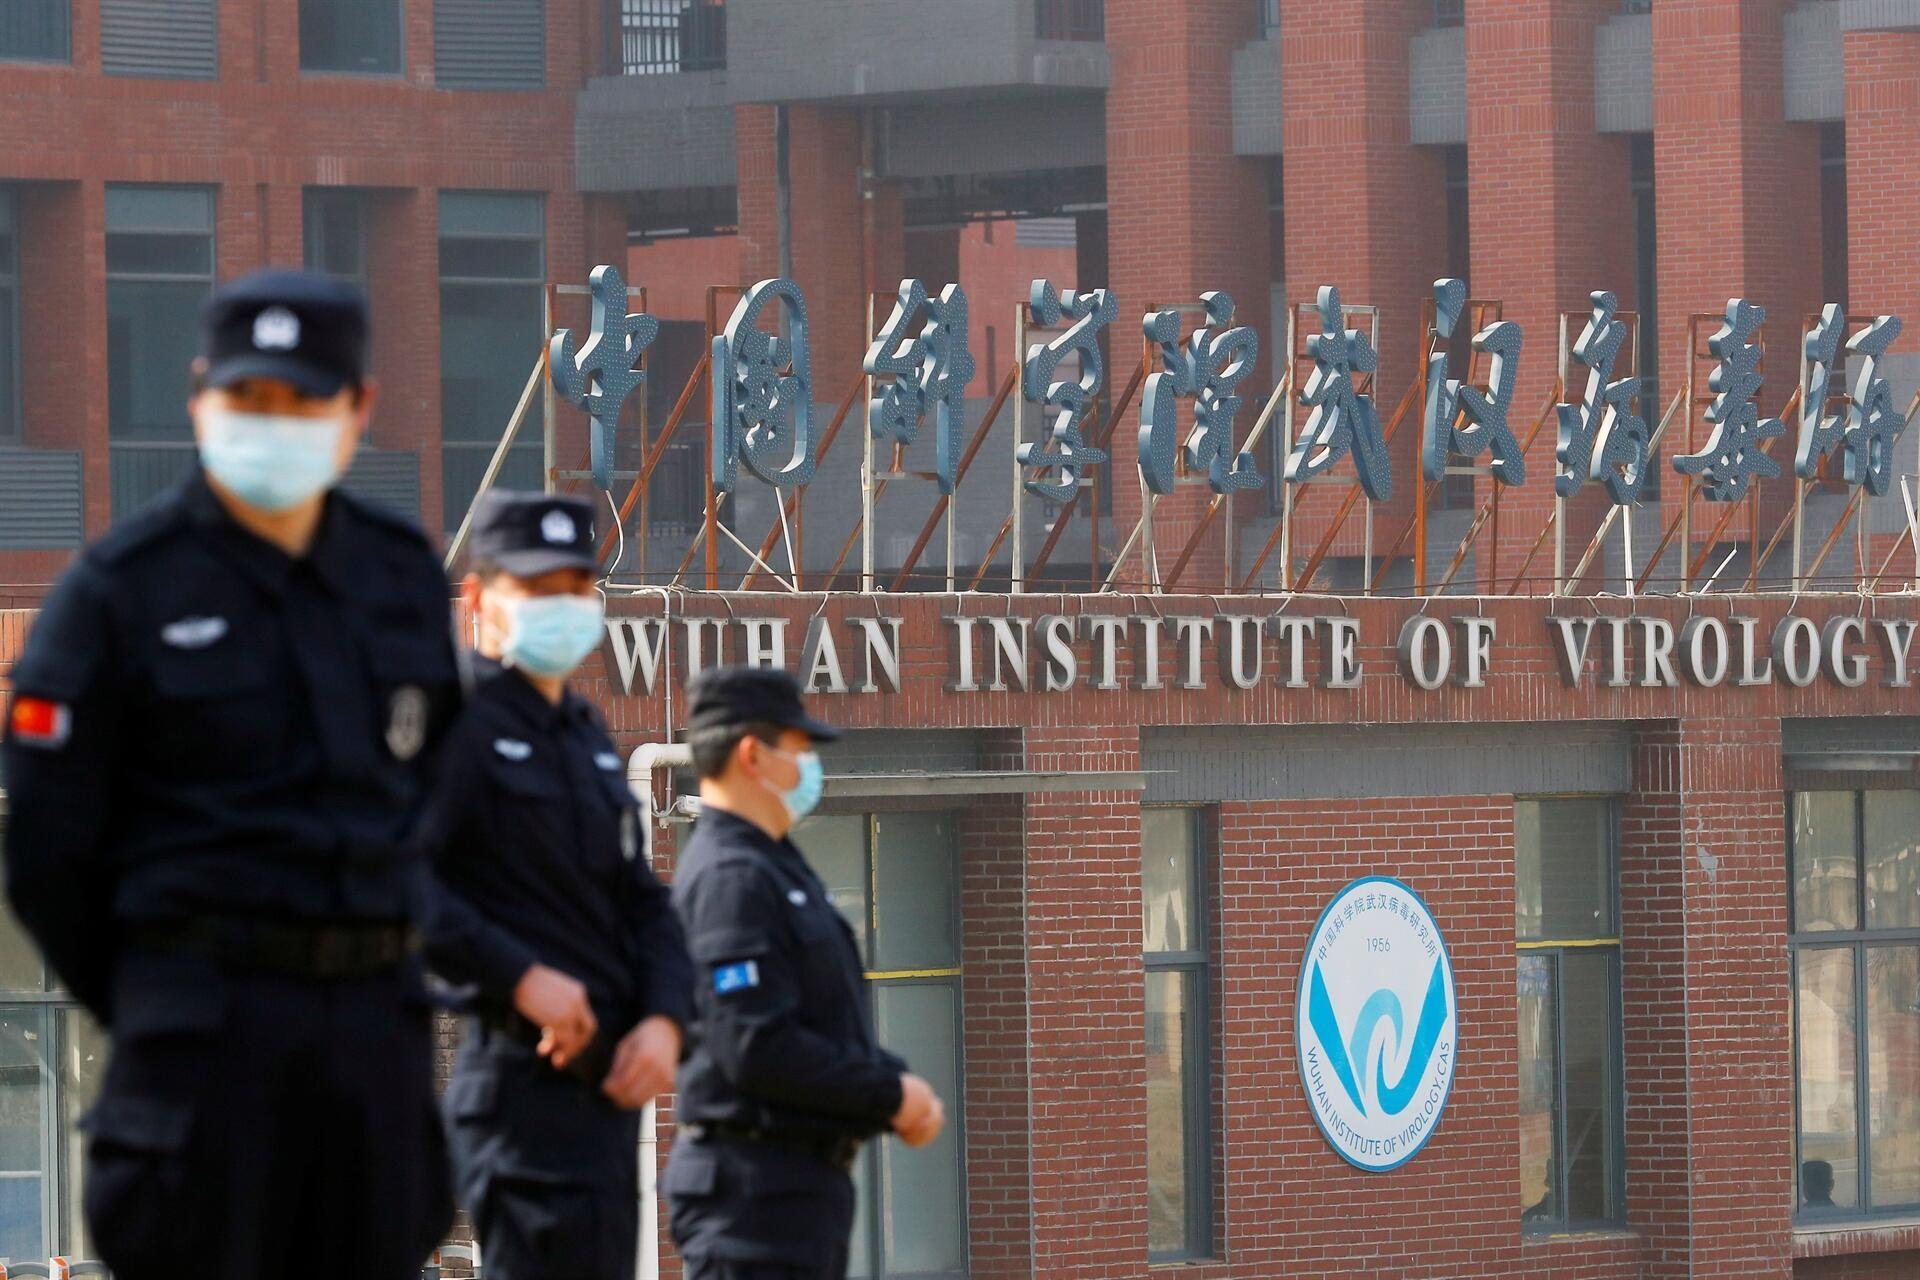 WHO team visits Wuhan virus lab at center of speculation - World News